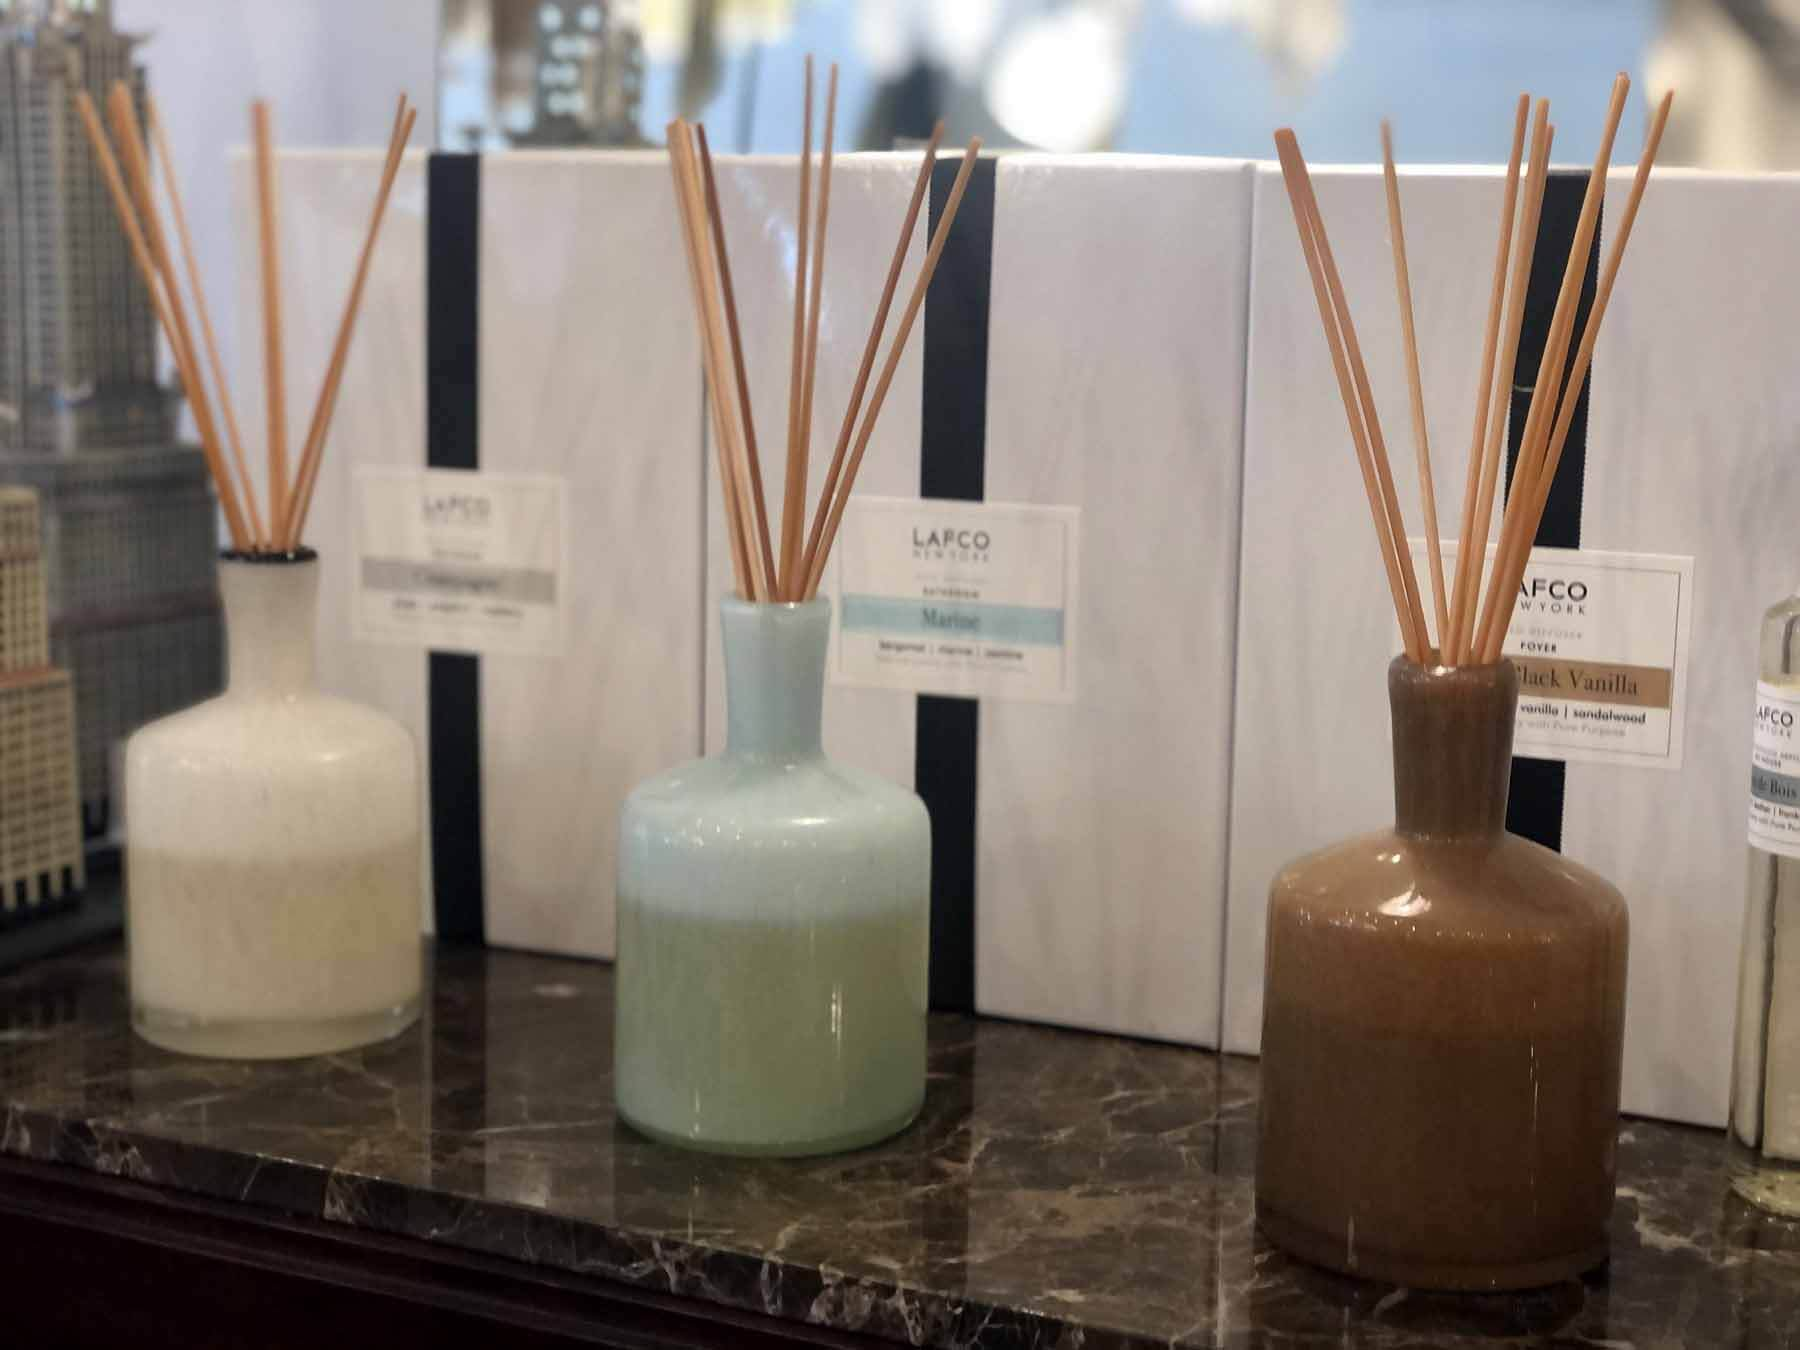 Nashville FINDS June: Three scented diffuser in different colors